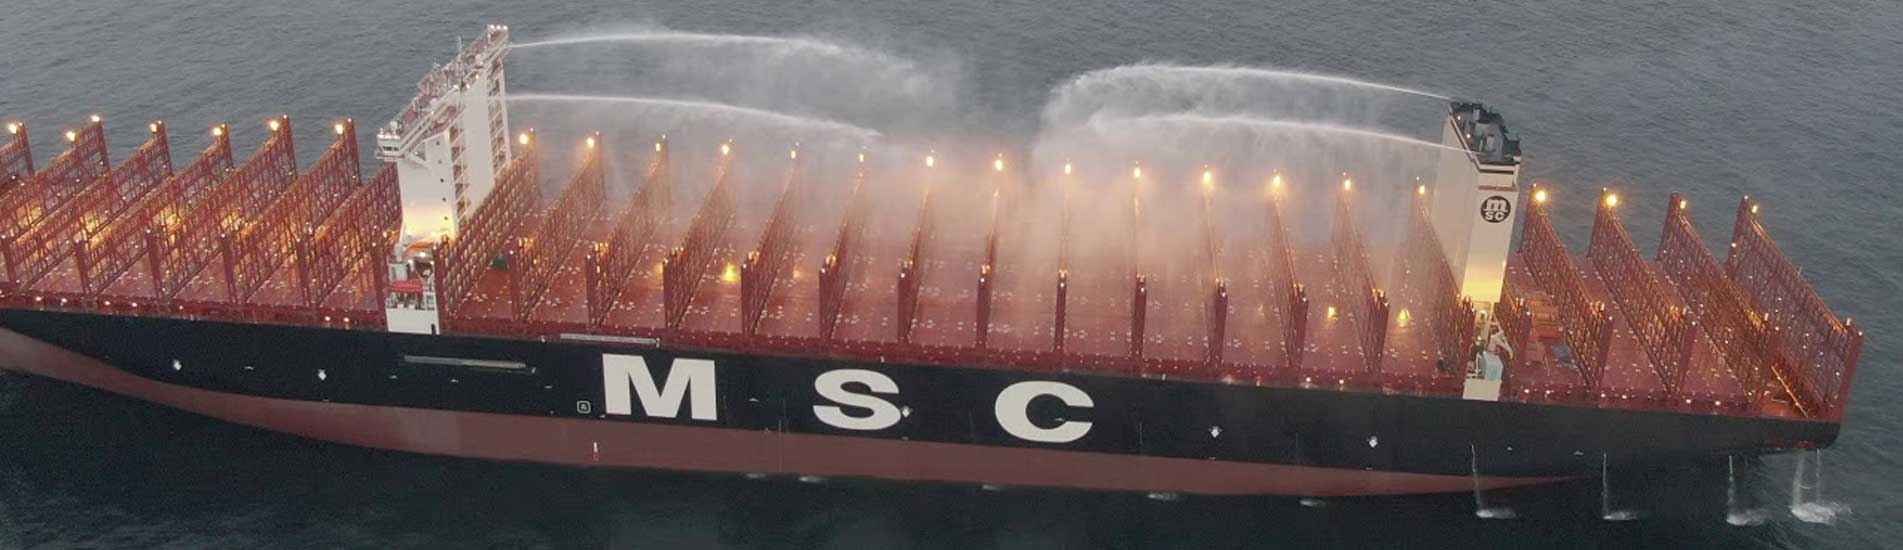 The MSC Gülsün class vessels use the world's first on-deck firefighting monitors - fixed water cannons to slow and stop the spread of fire by cooling, which have a reach of more than 100 metres.